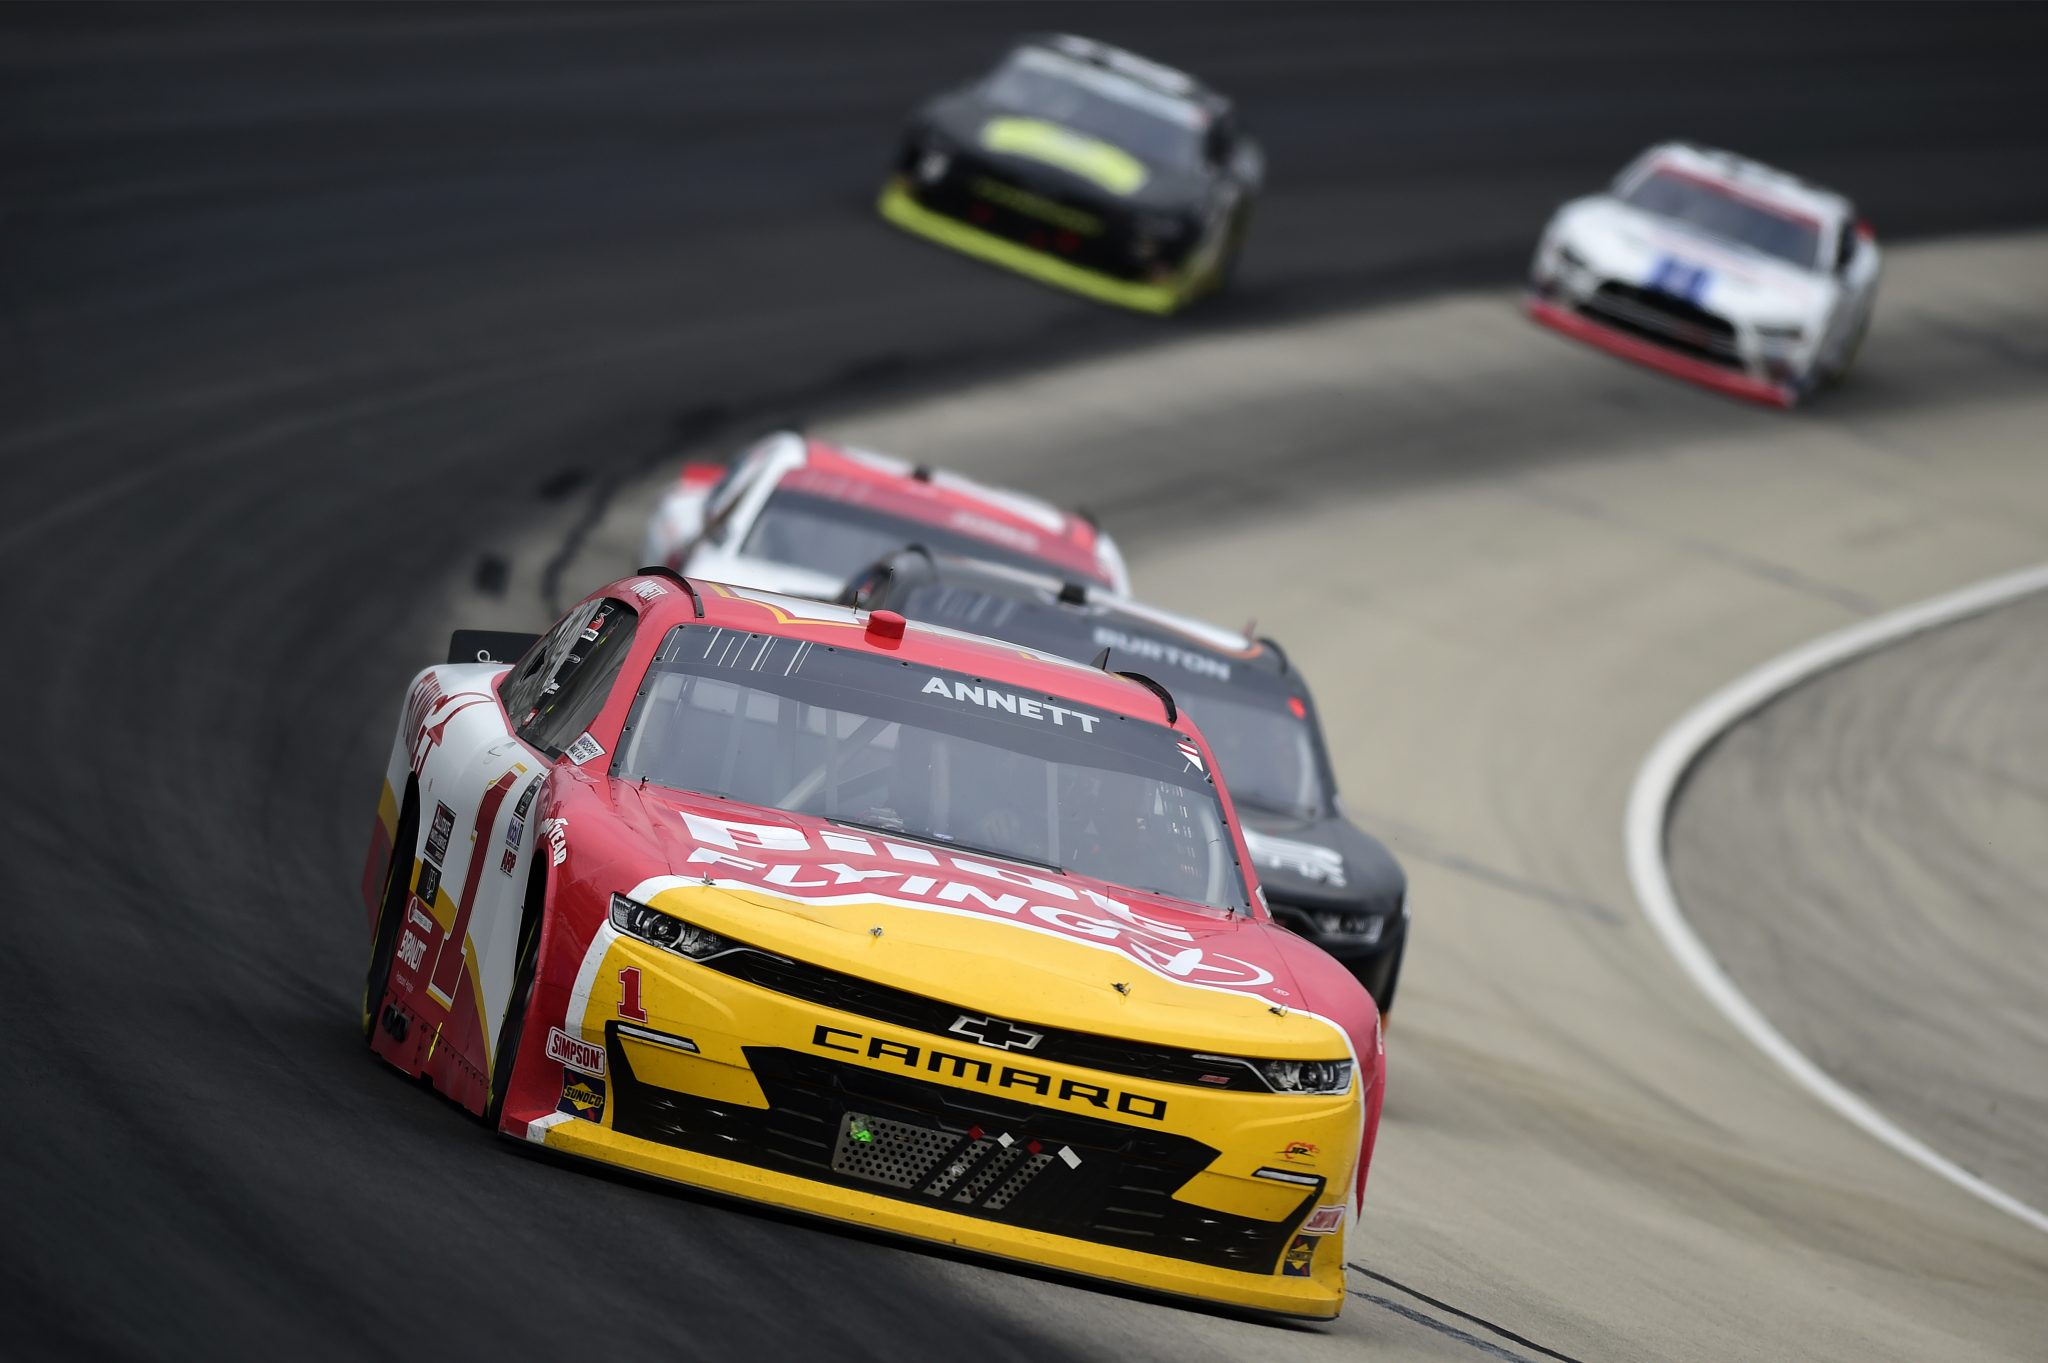 FORT WORTH, TEXAS - OCTOBER 24: Michael Annett, driver of the #1 Pilot/Flying J Chevrolet, leads the field during the NASCAR Xfinity Series O'Reilly Auto Parts 300 at Texas Motor Speedway on October 24, 2020 in Fort Worth, Texas. (Photo by Jared C. Tilton/Getty Images) | Getty Images